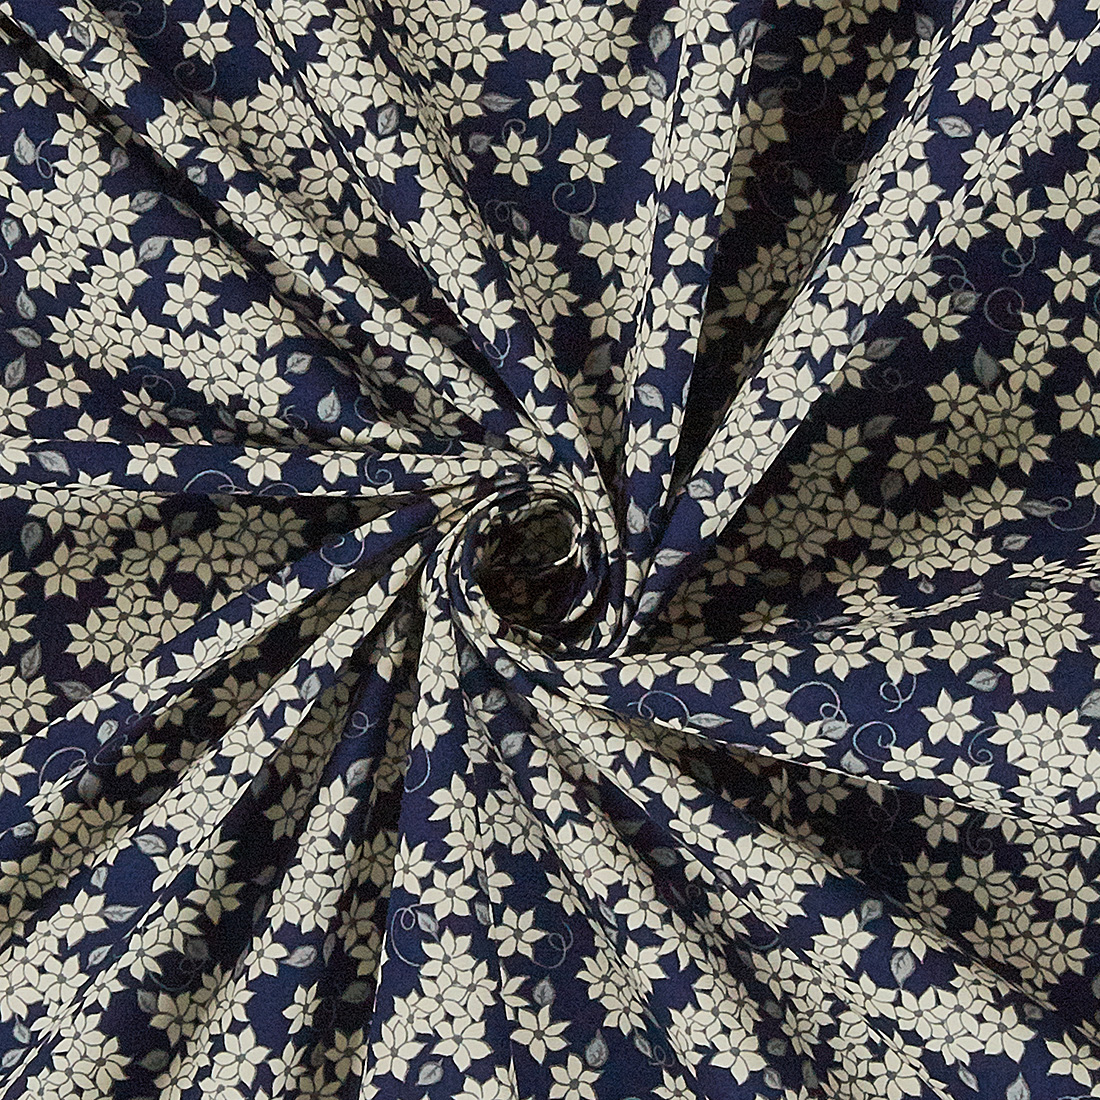 Cotton Mono Ditsy Floral Navy